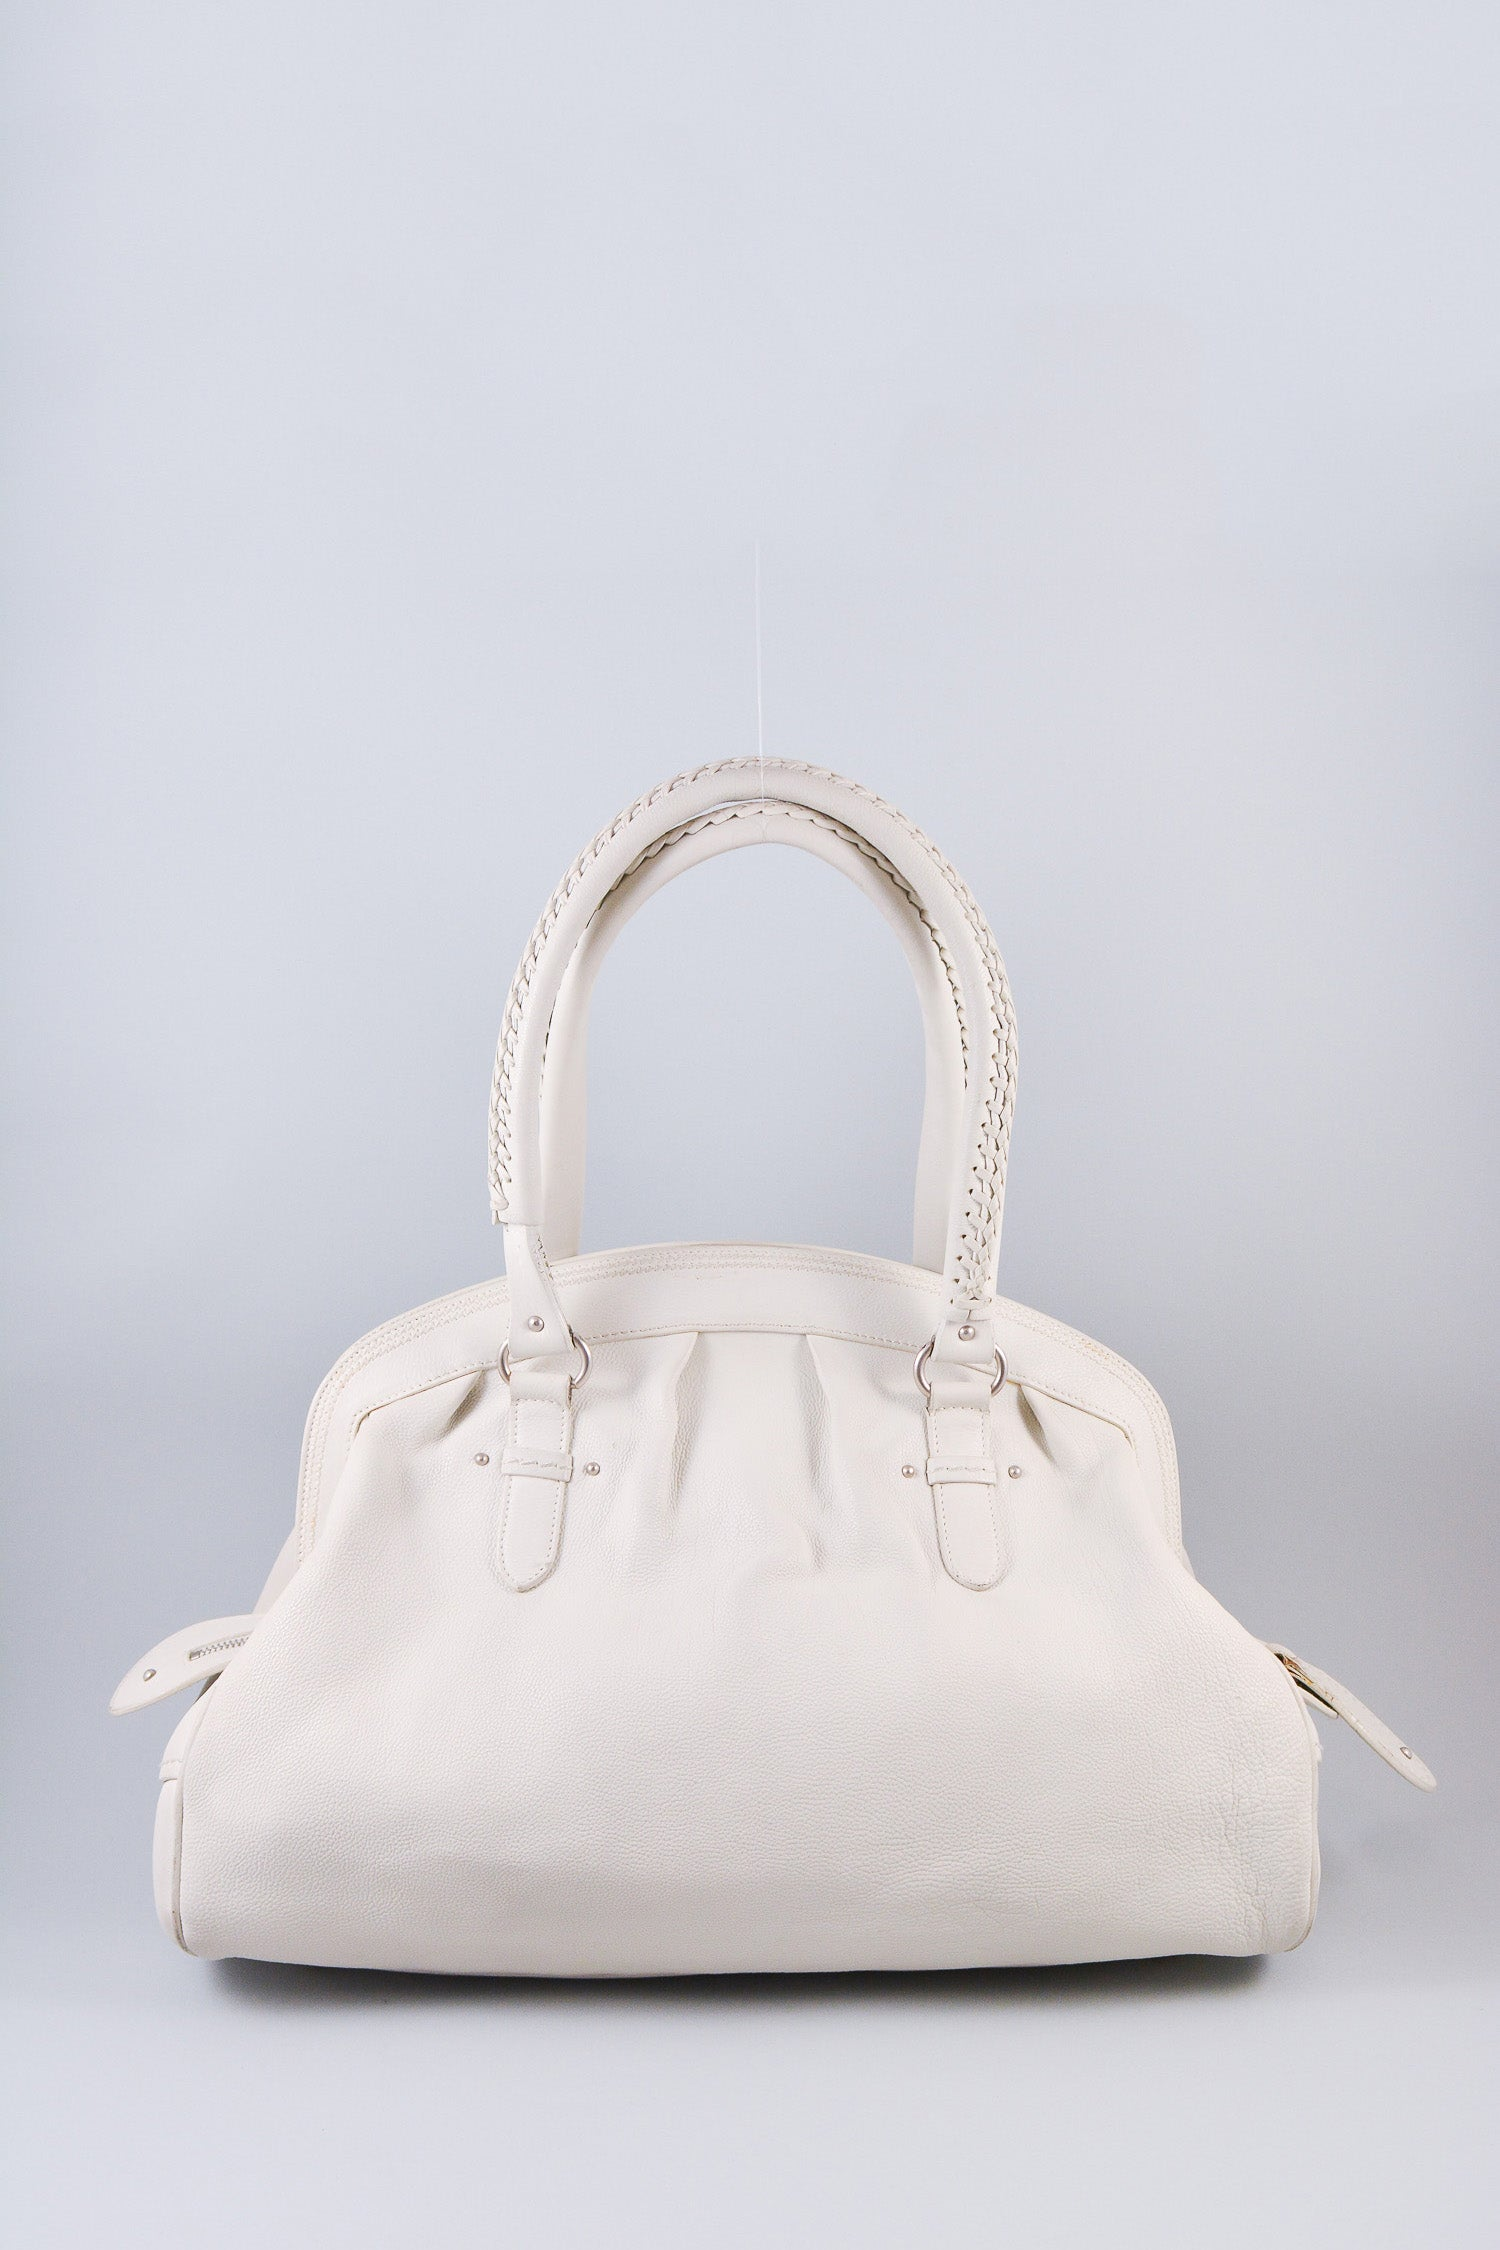 Christian Dior White Leather My Dior Bag